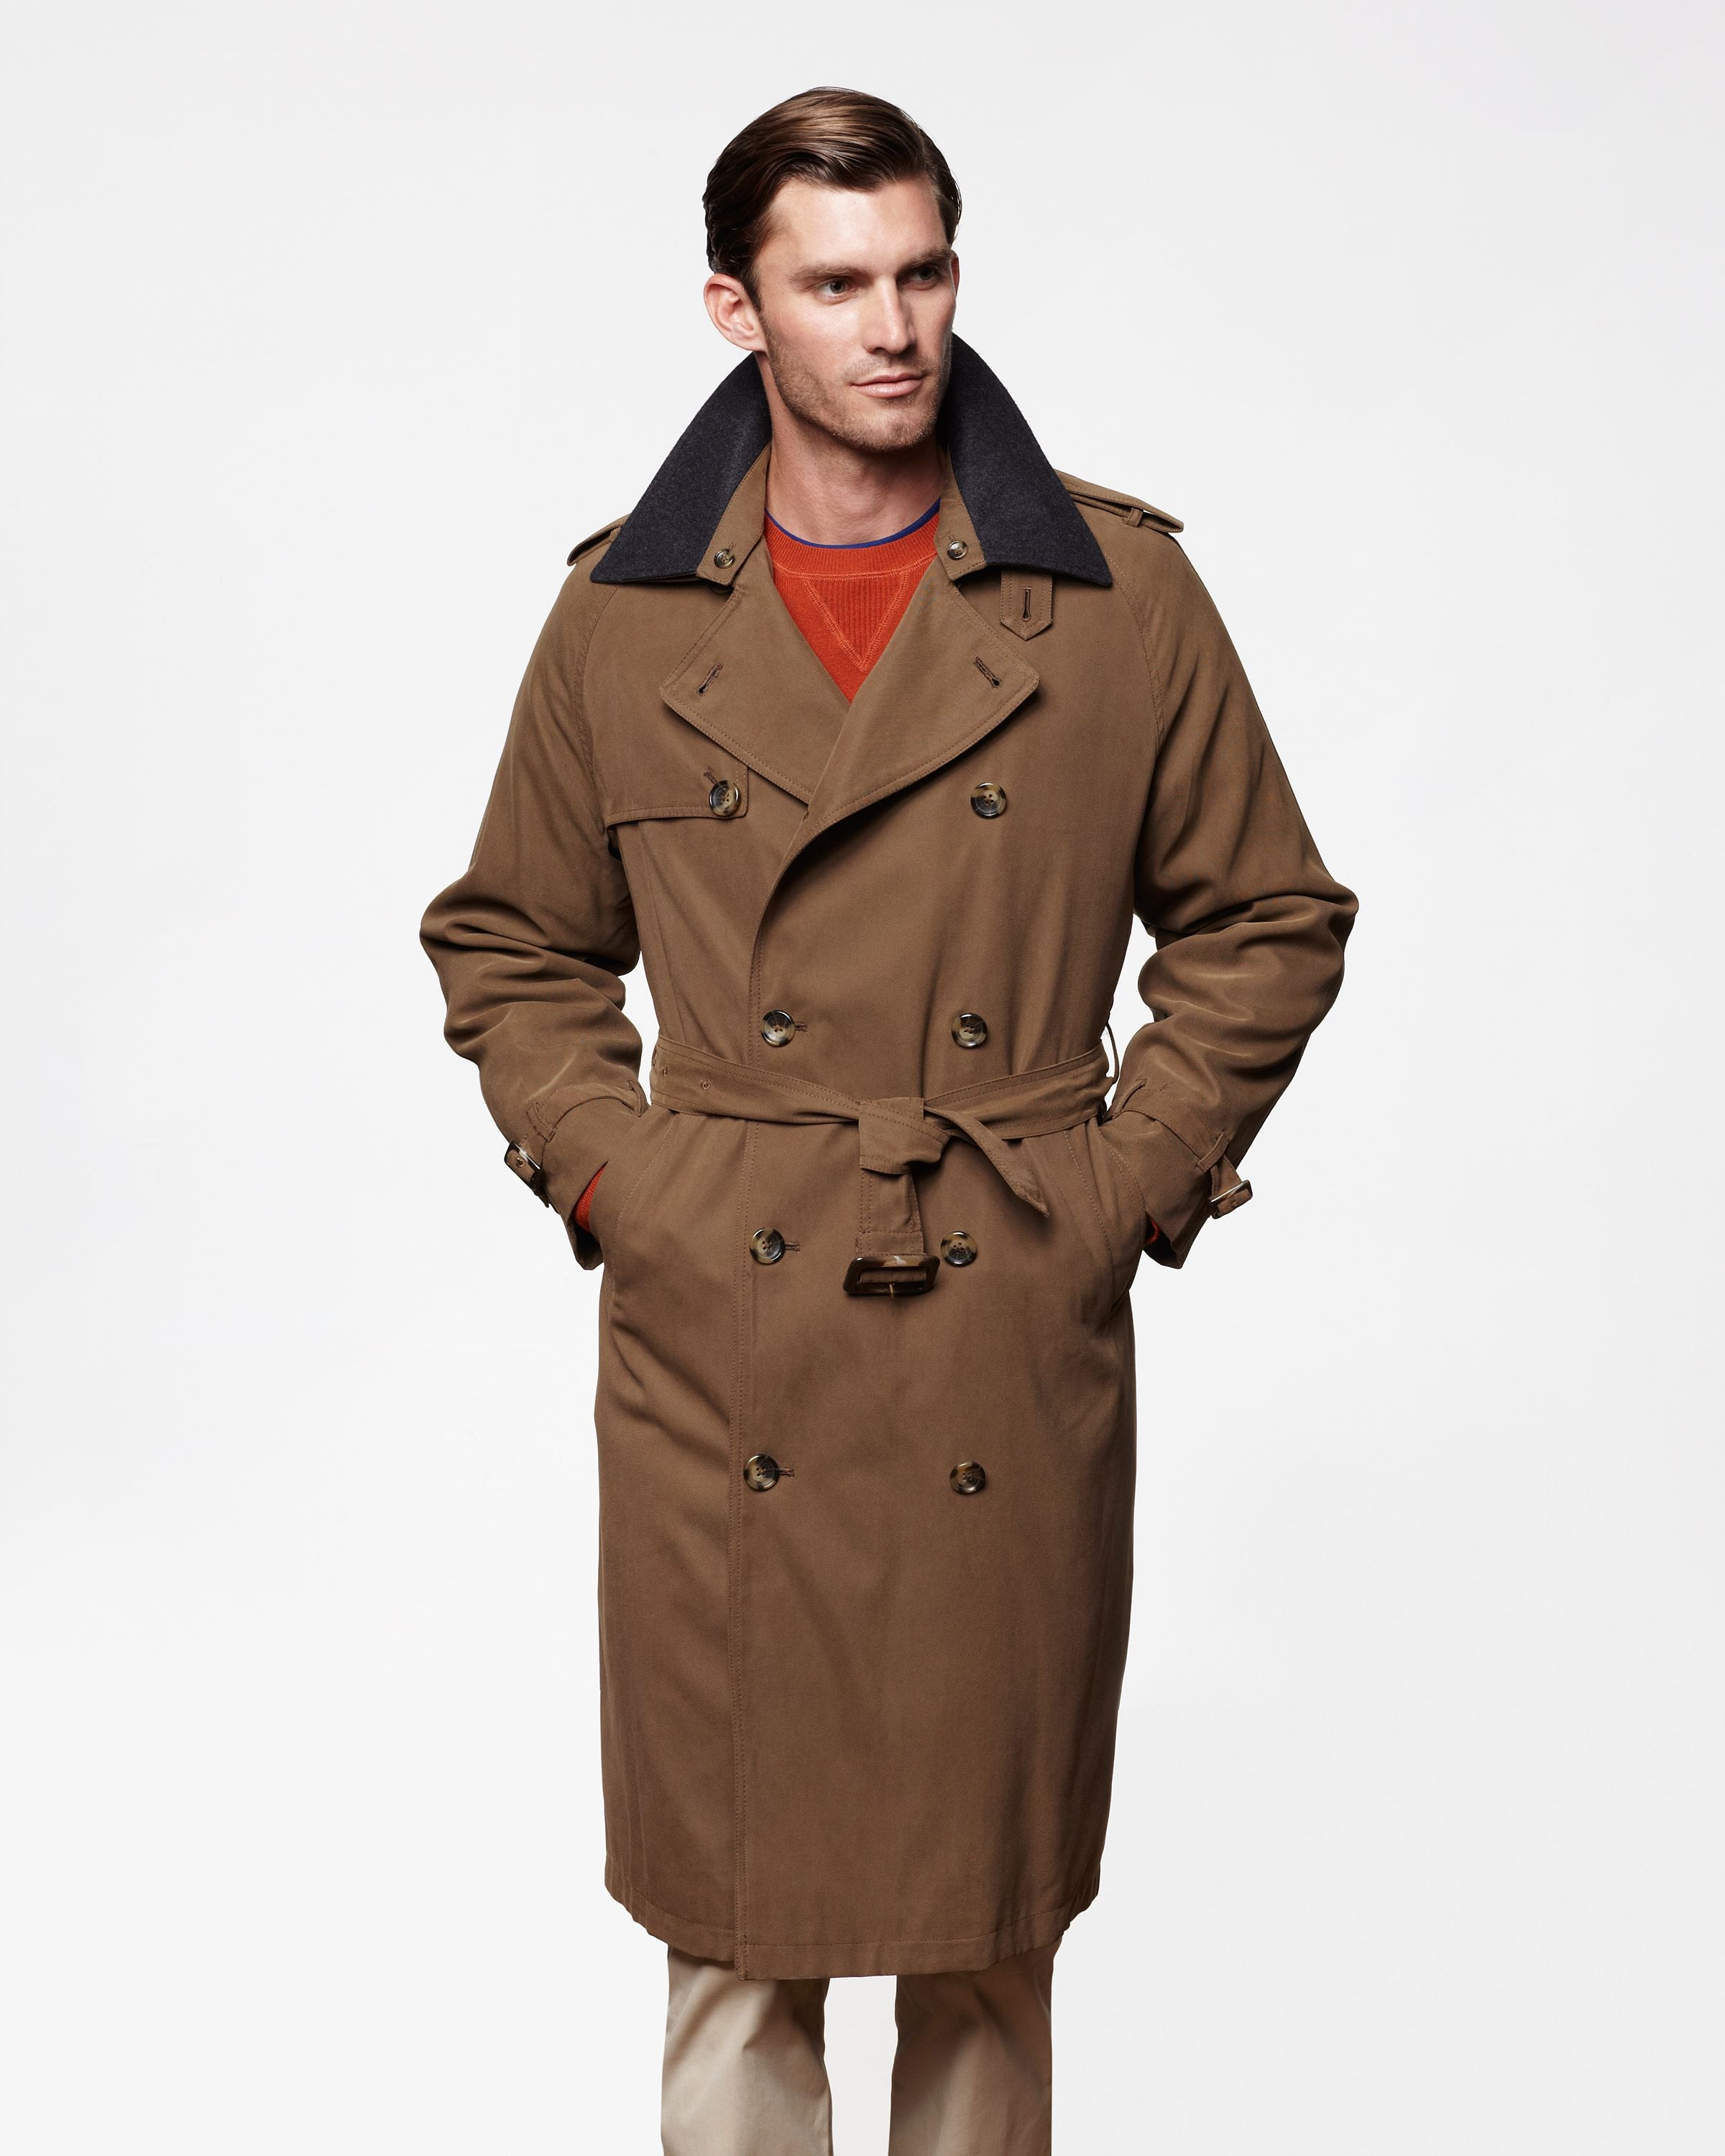 Trench Coat for Men Outfit Ideas